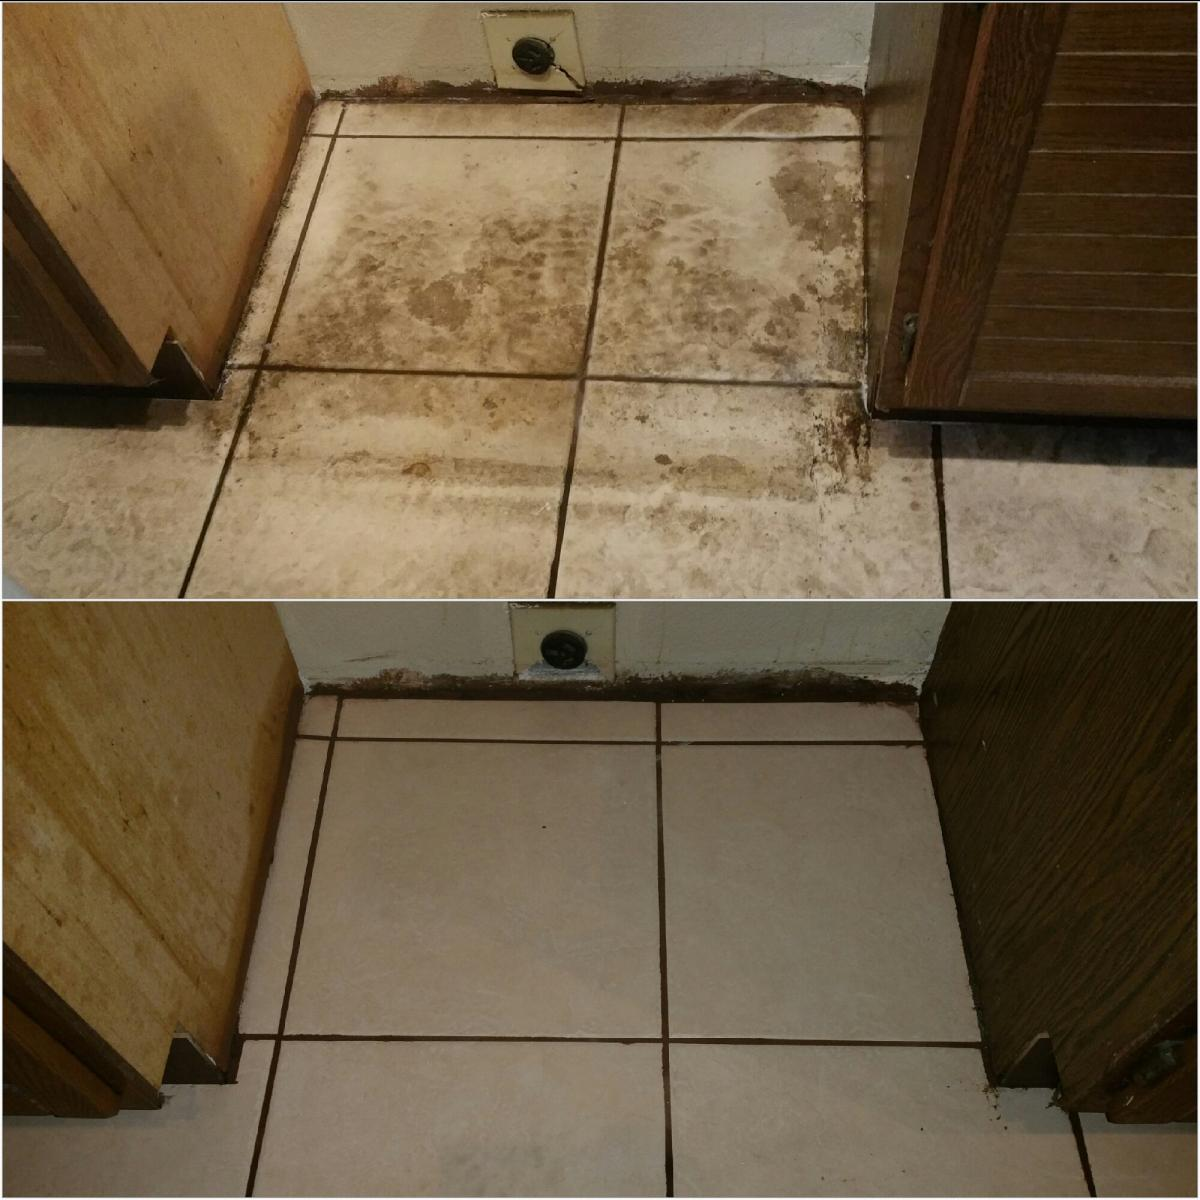 Best Tile And Grout Cleaning In Mesa AZ - Floor tile stores in mesa az